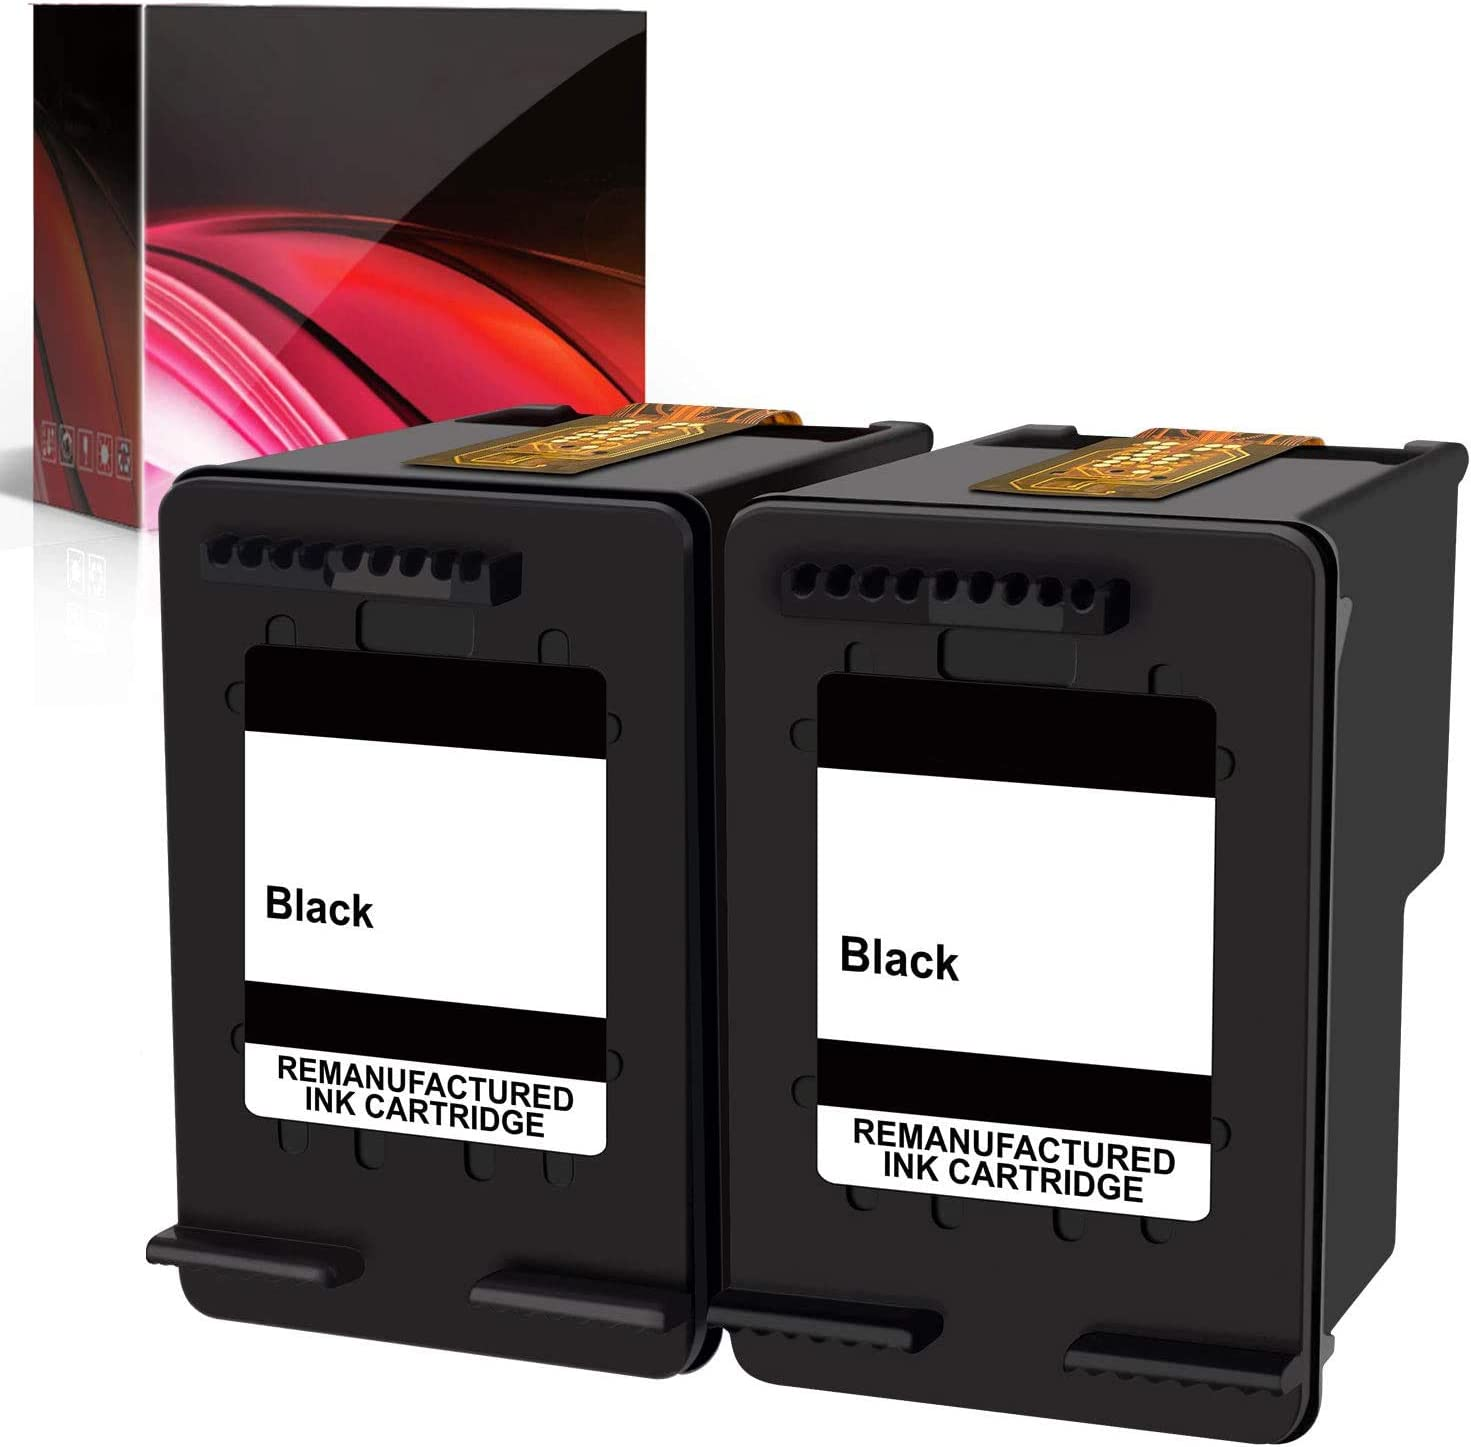 Remanufactured Ink Cartridge Replacement